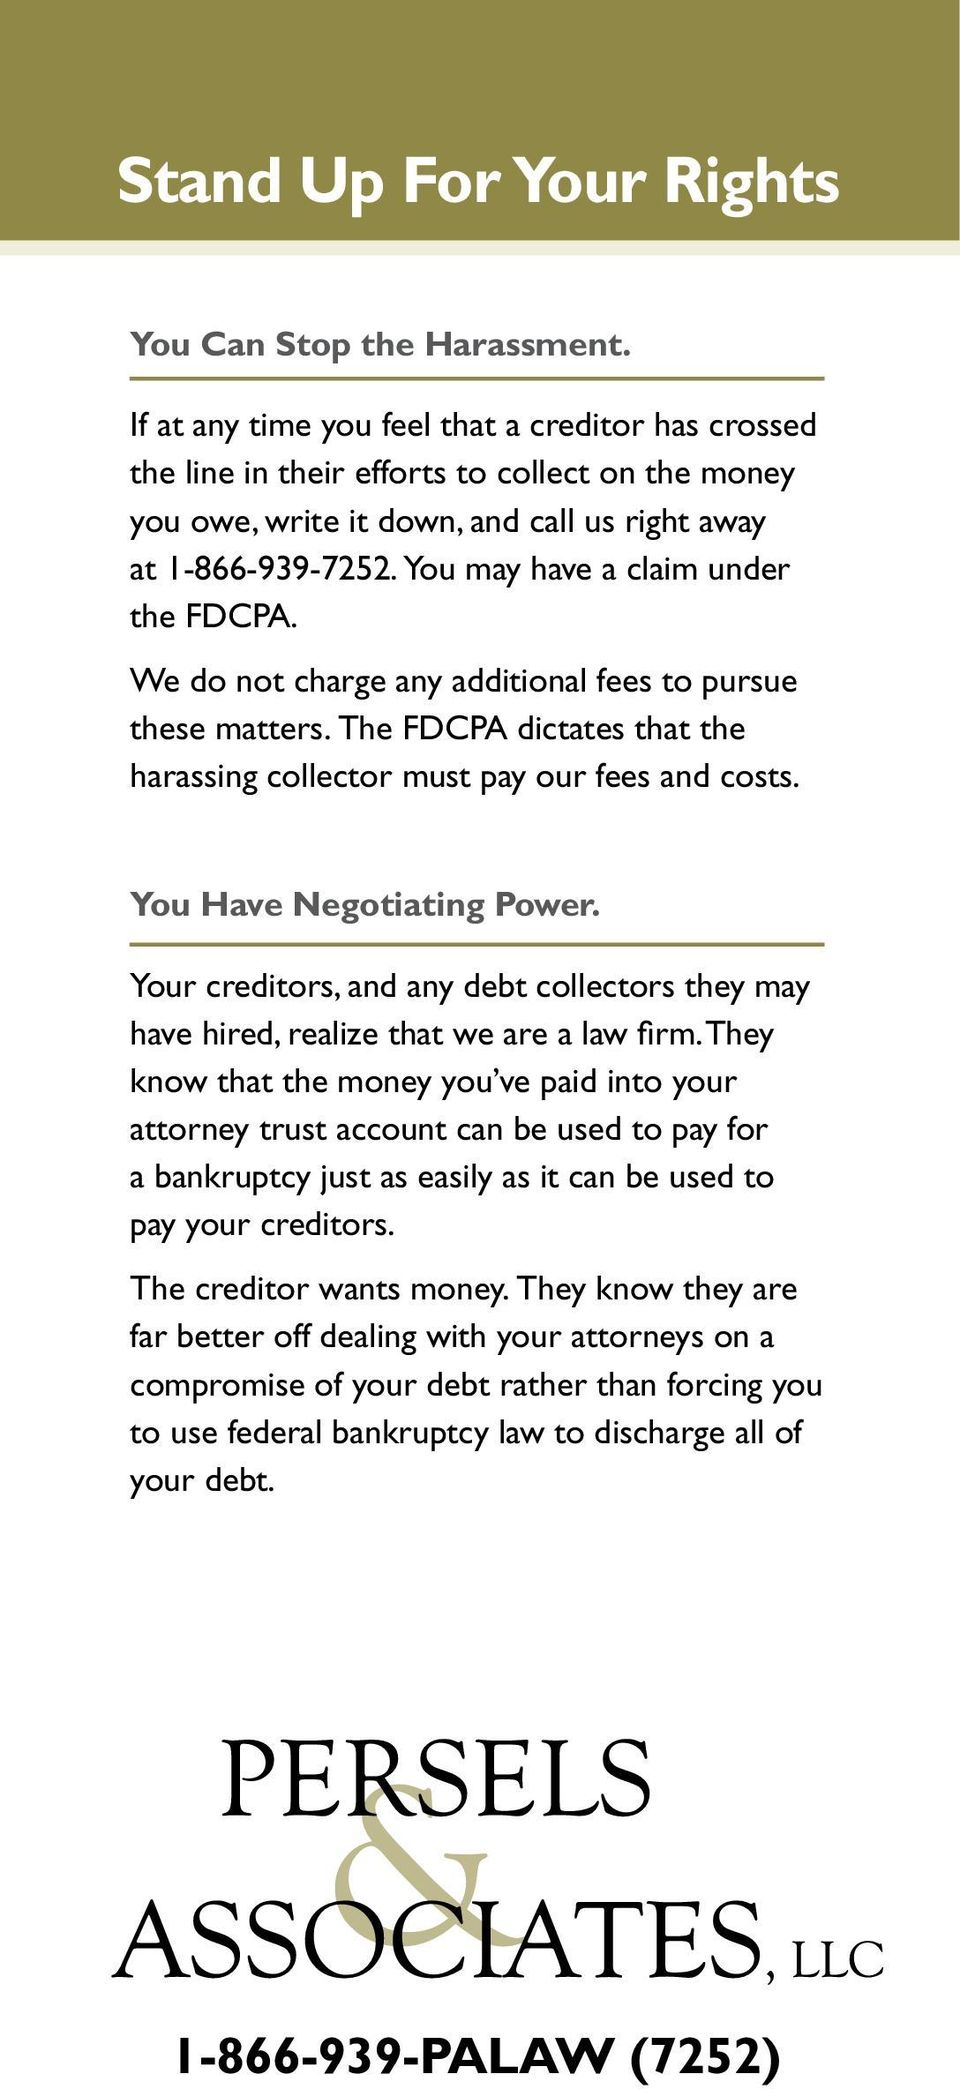 We do ot charge ay additioal fees to pursue these matters. The FDCPA dictates that the harassig collector must pay our fees ad costs. You Have Negotiatig Power.